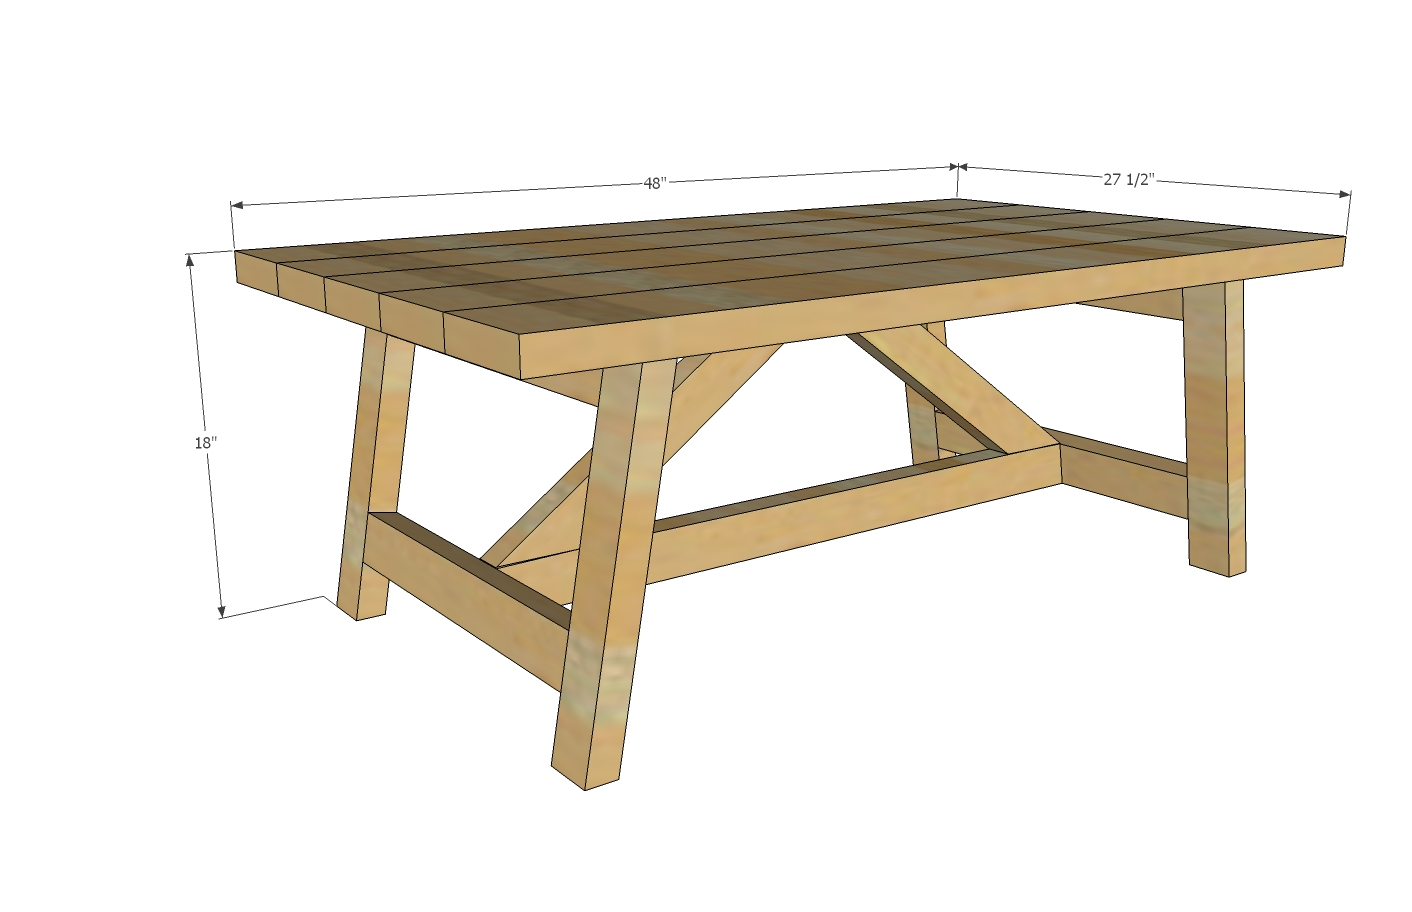 wood coffee table plans free photo - 2